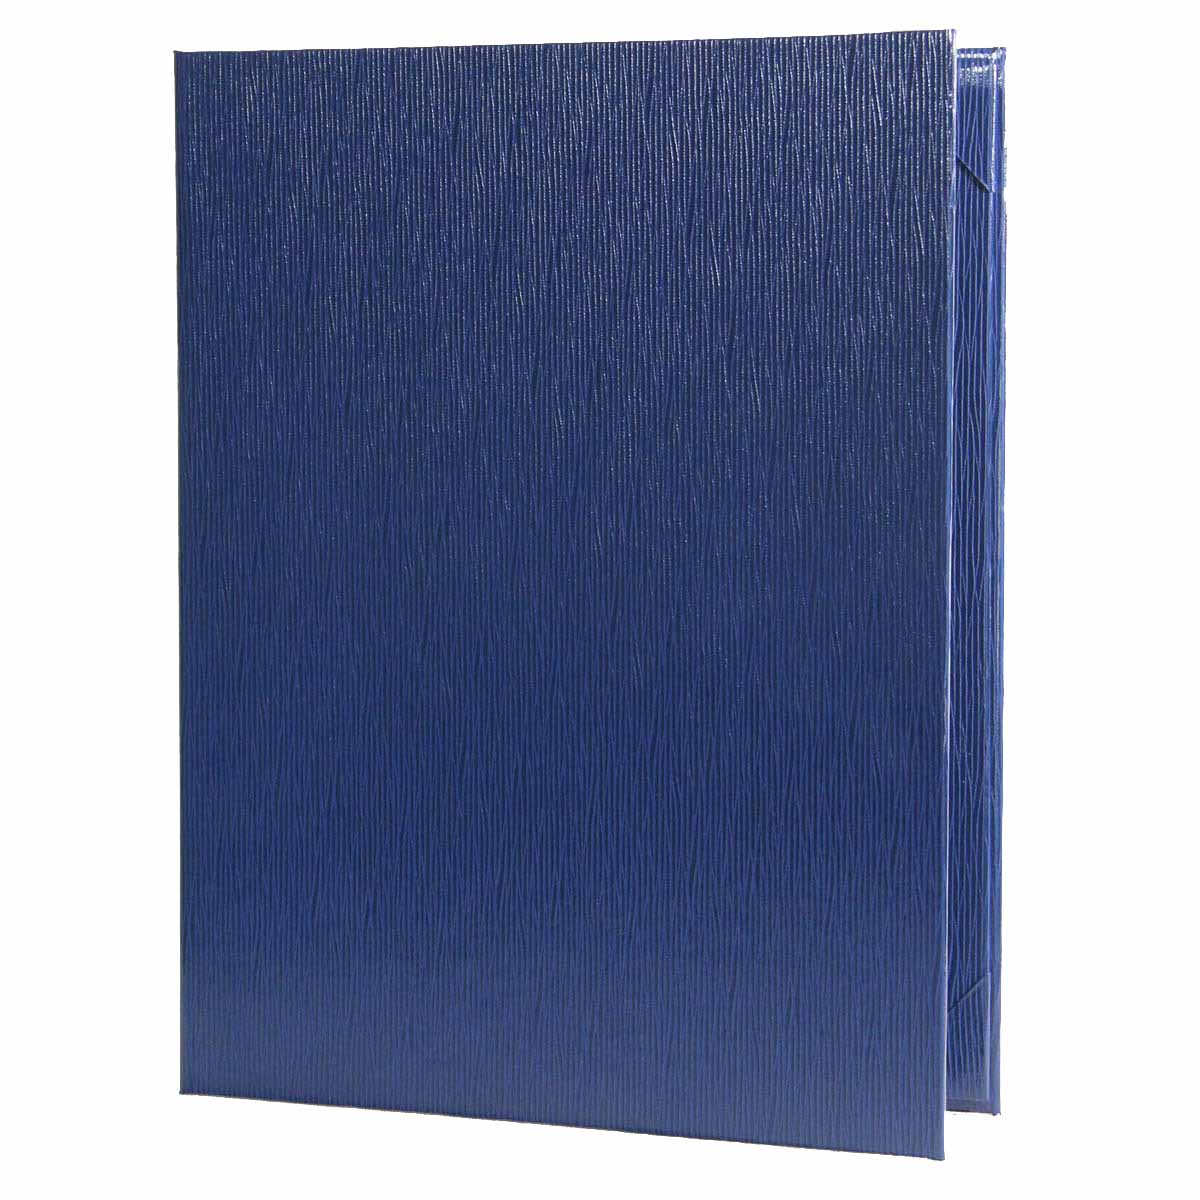 Glean two view menu cover 8.5x11 in royal blue.